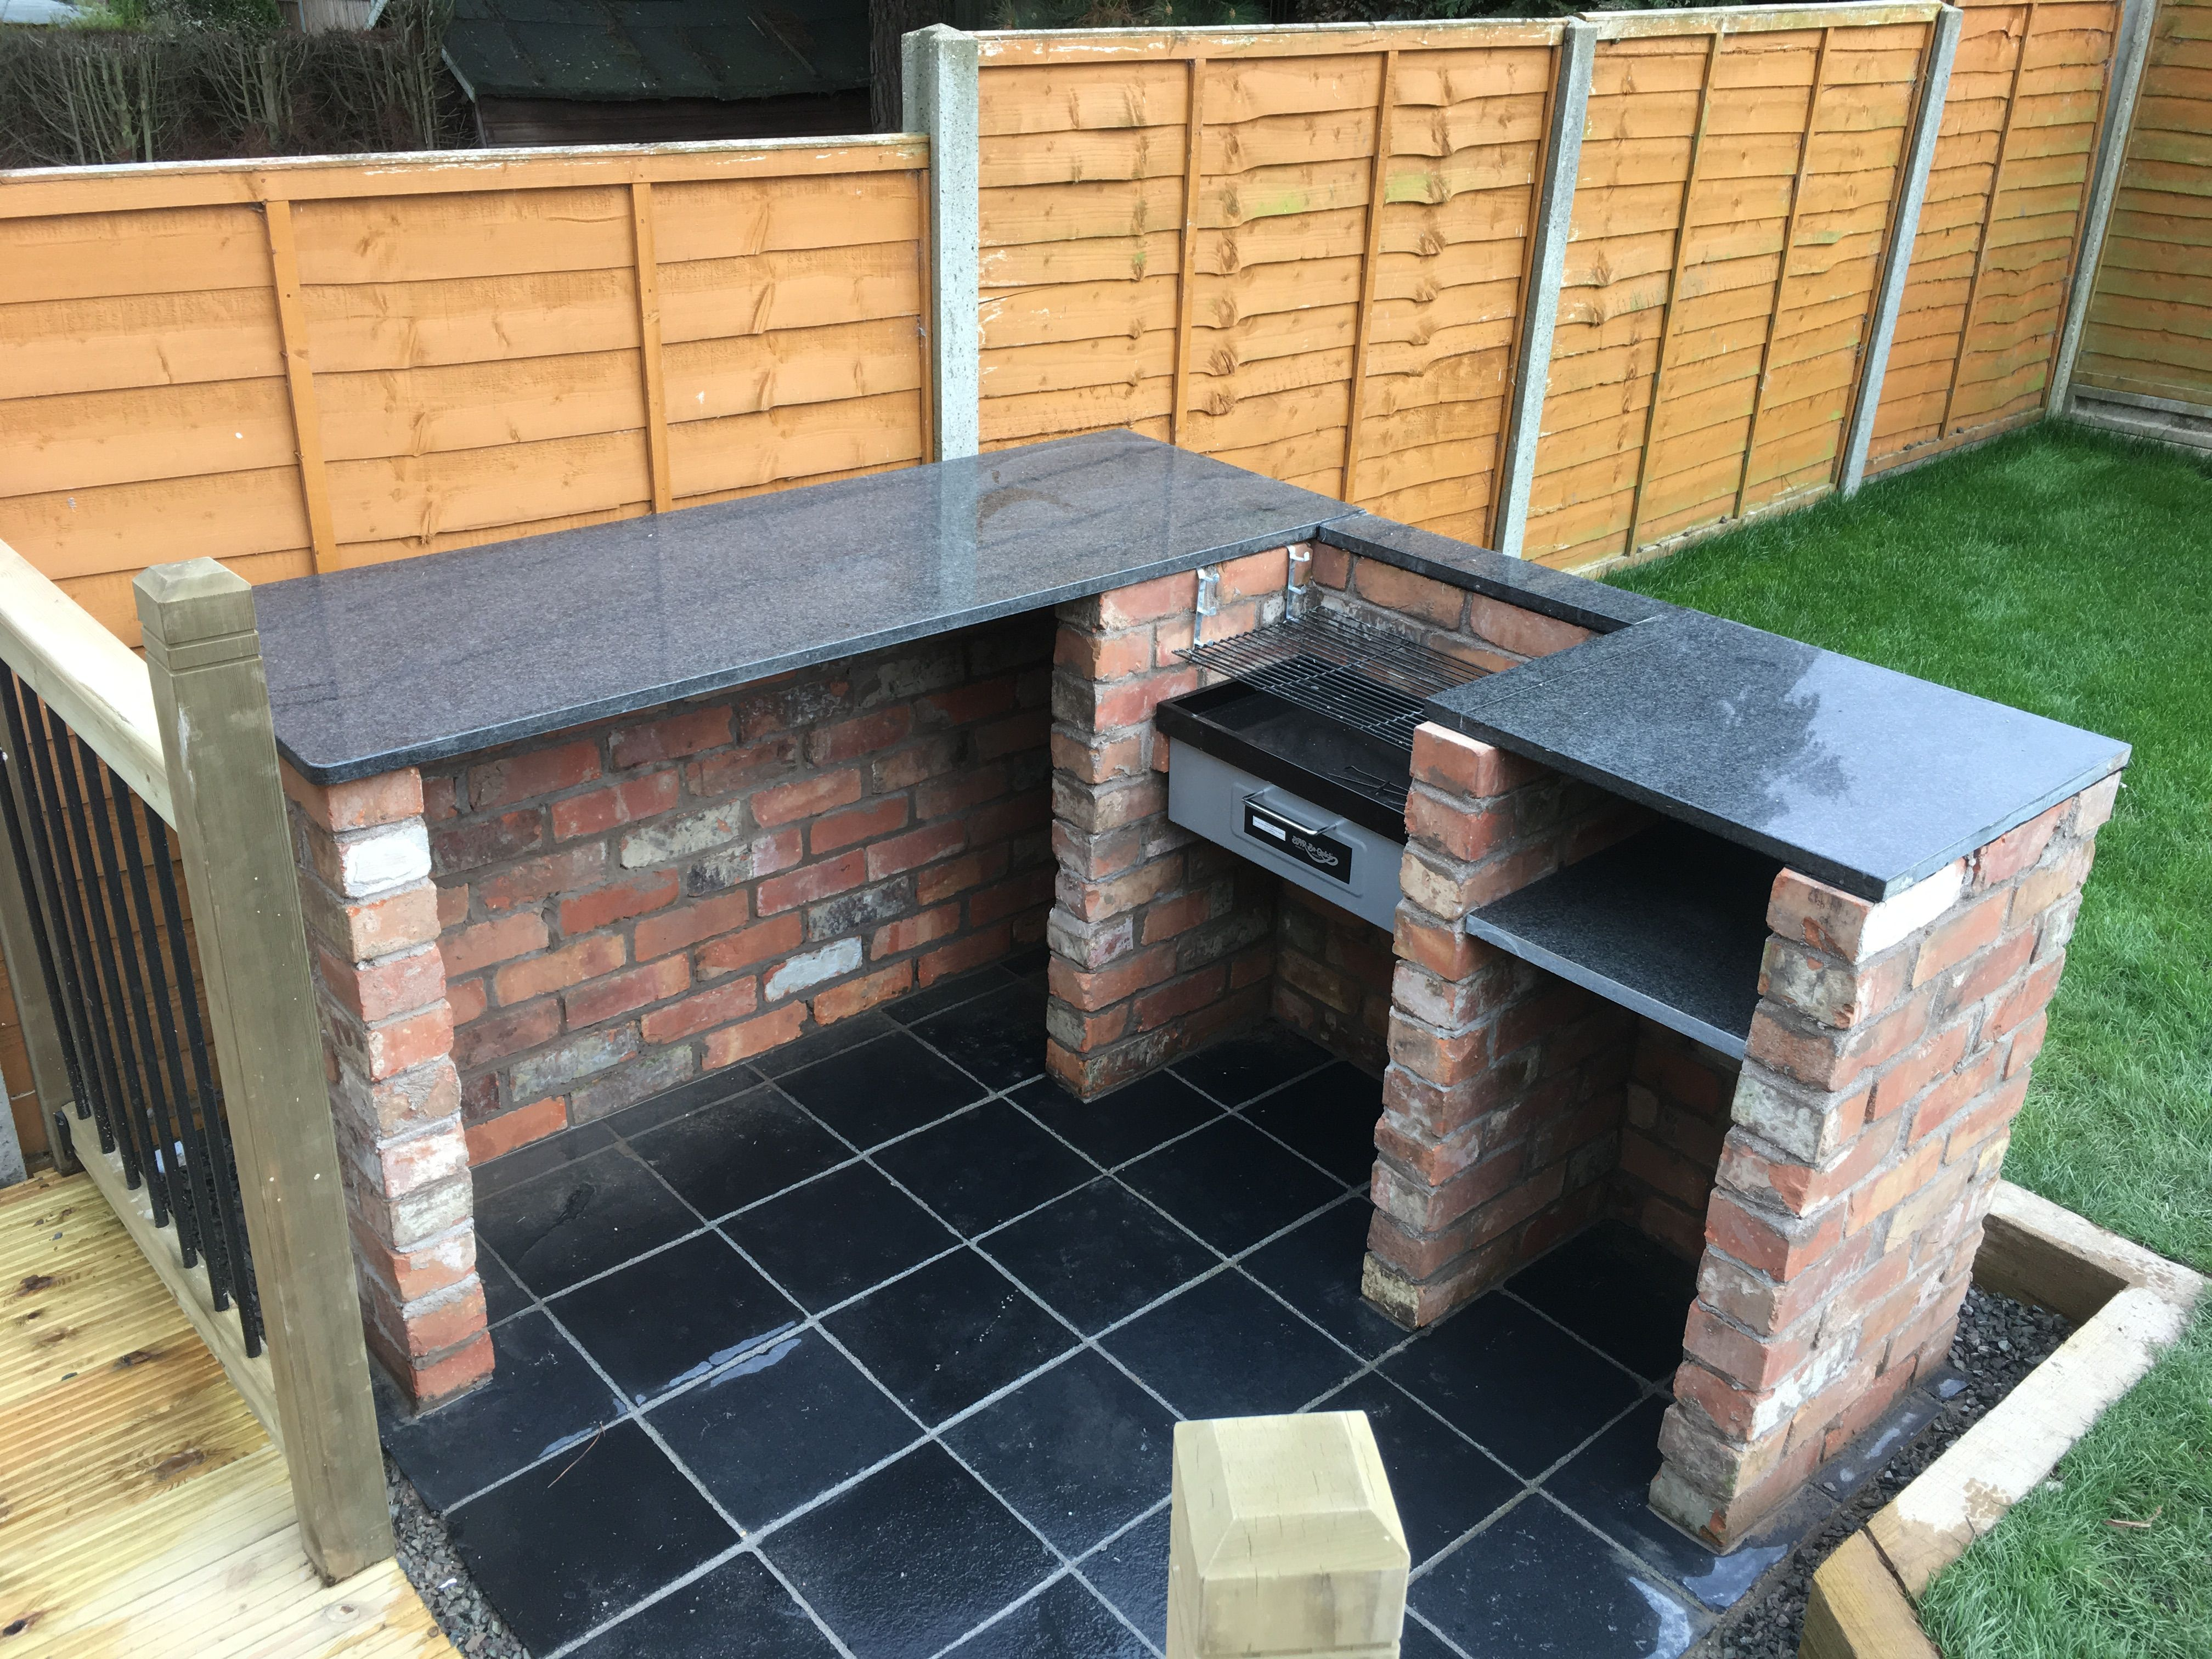 Bbq and pizza oven with granite worktop and rustic brick for Garden design ideas bbq